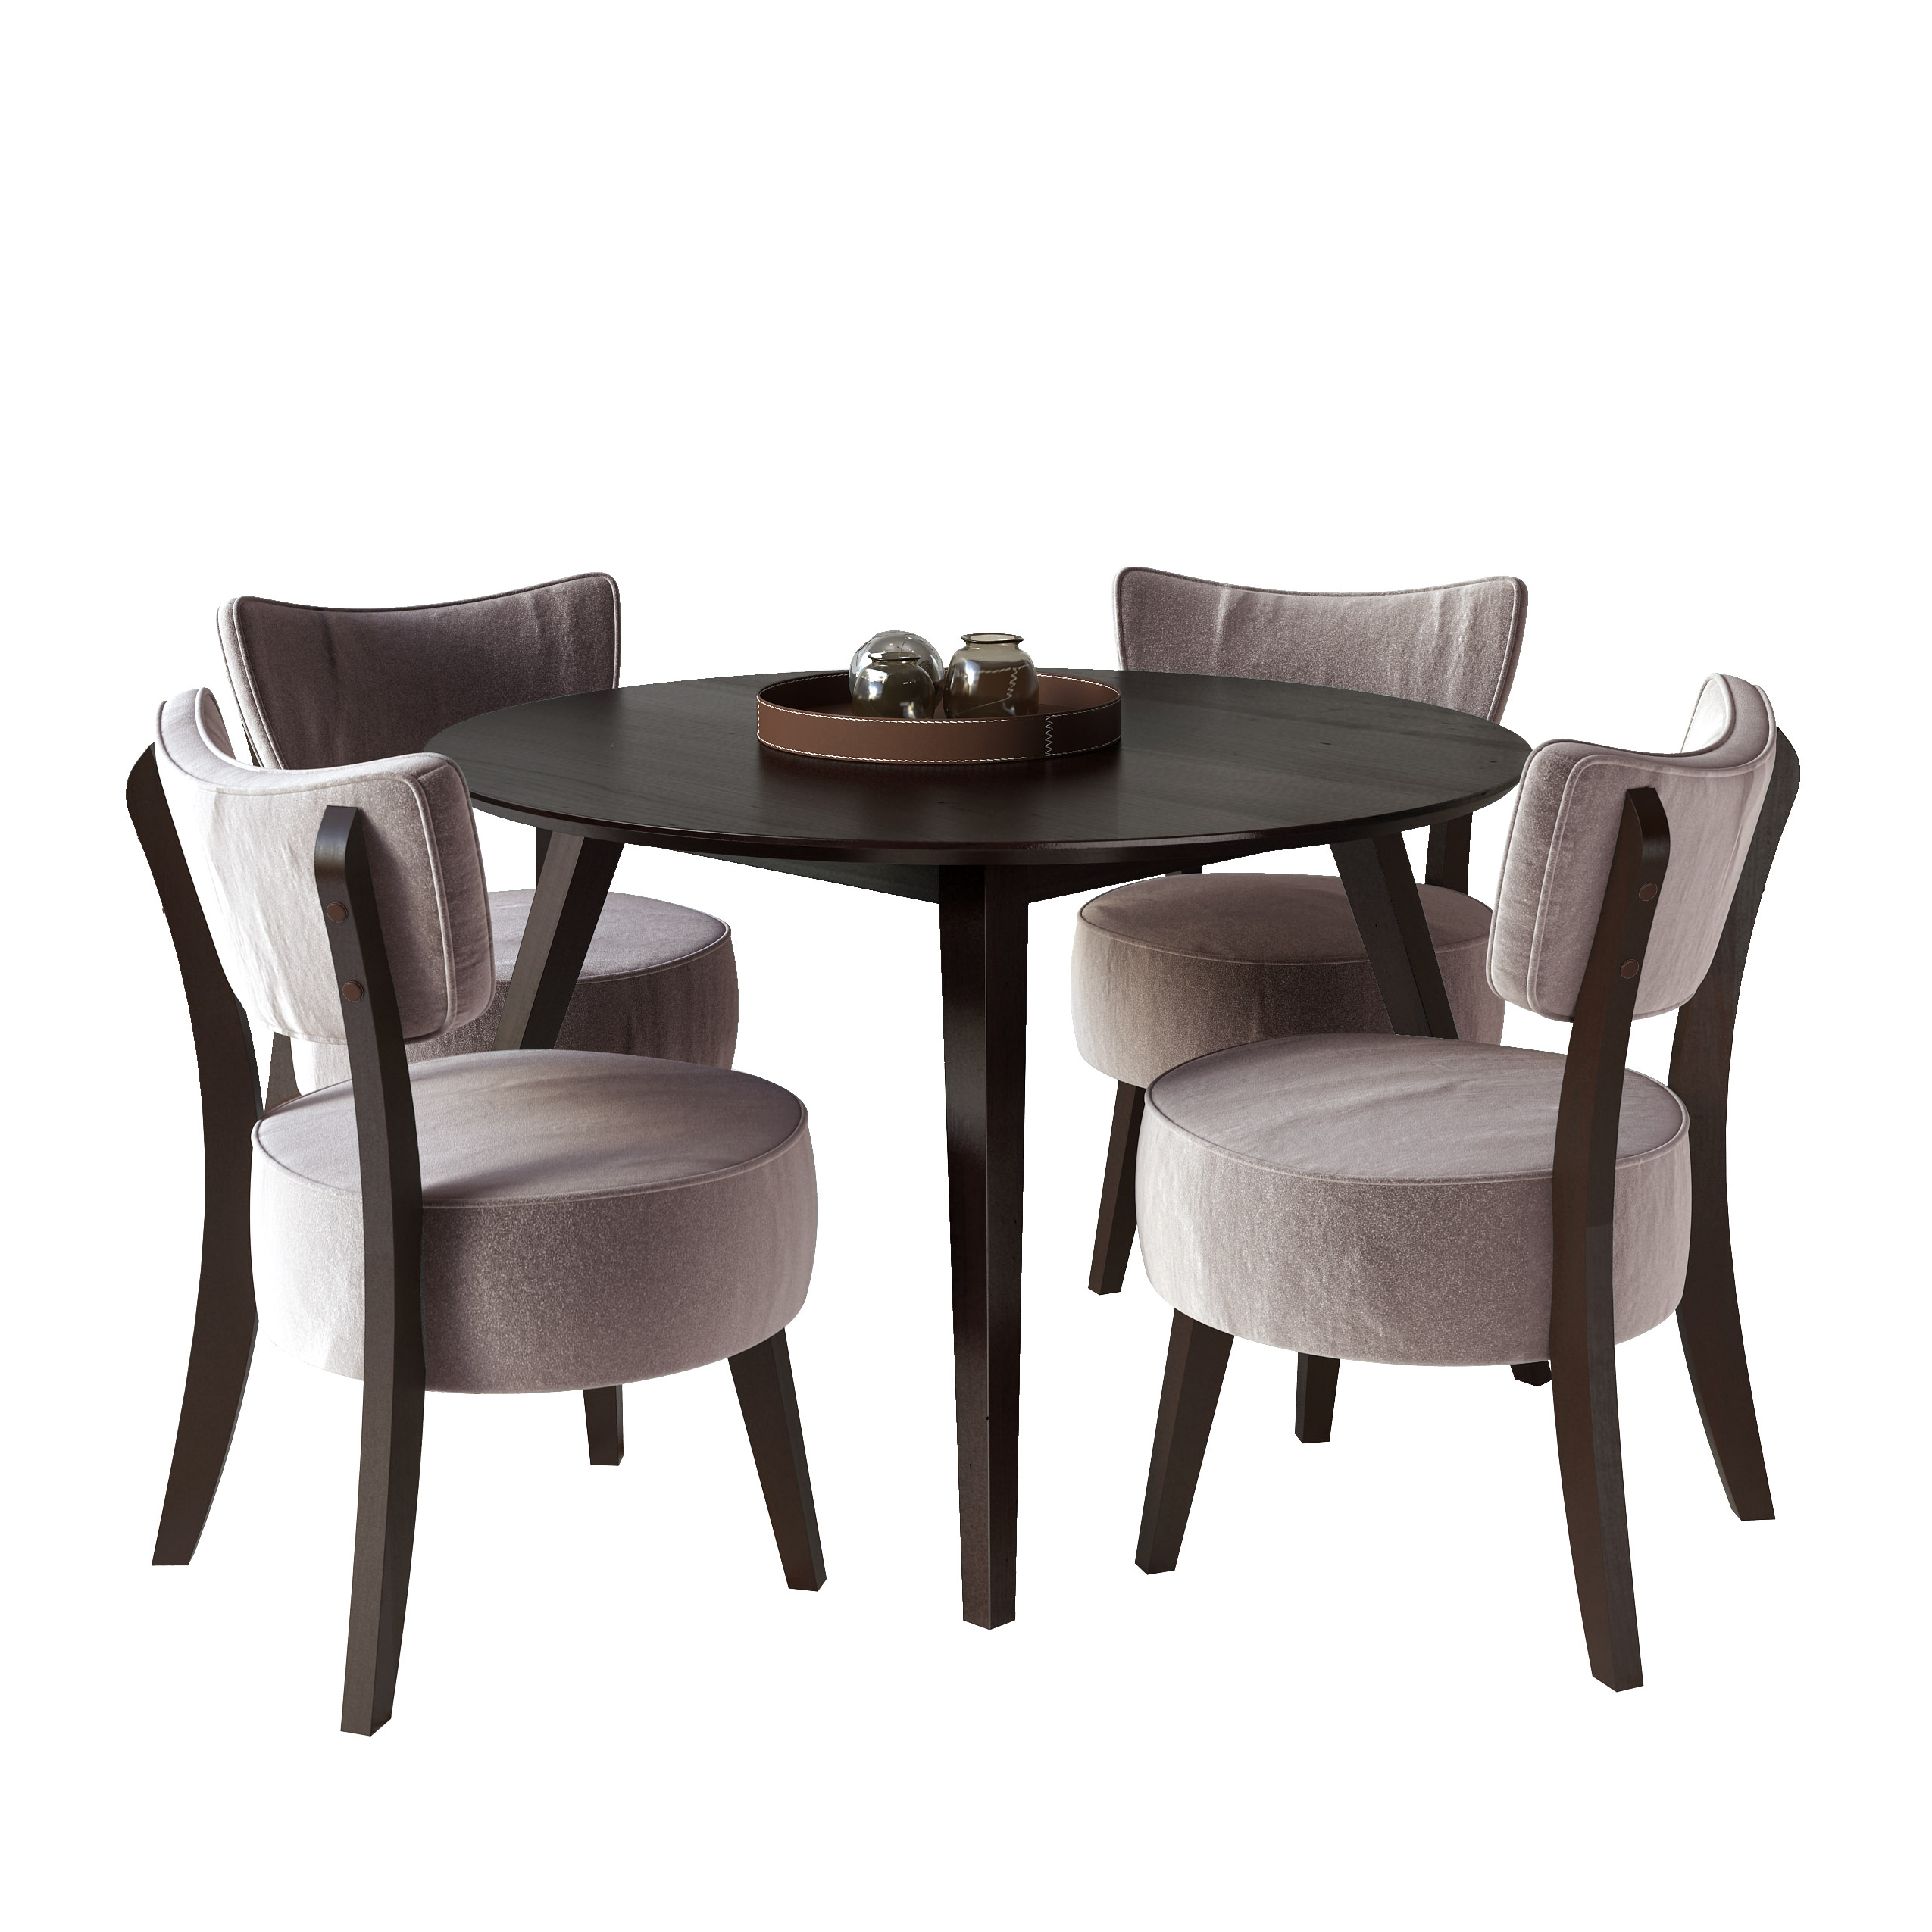 Atwood Transitional Rectangular Dining Tables For Favorite Corliving Atwood 42 In X 42 In Cappuccino Stained Square Dining Table (View 4 of 30)